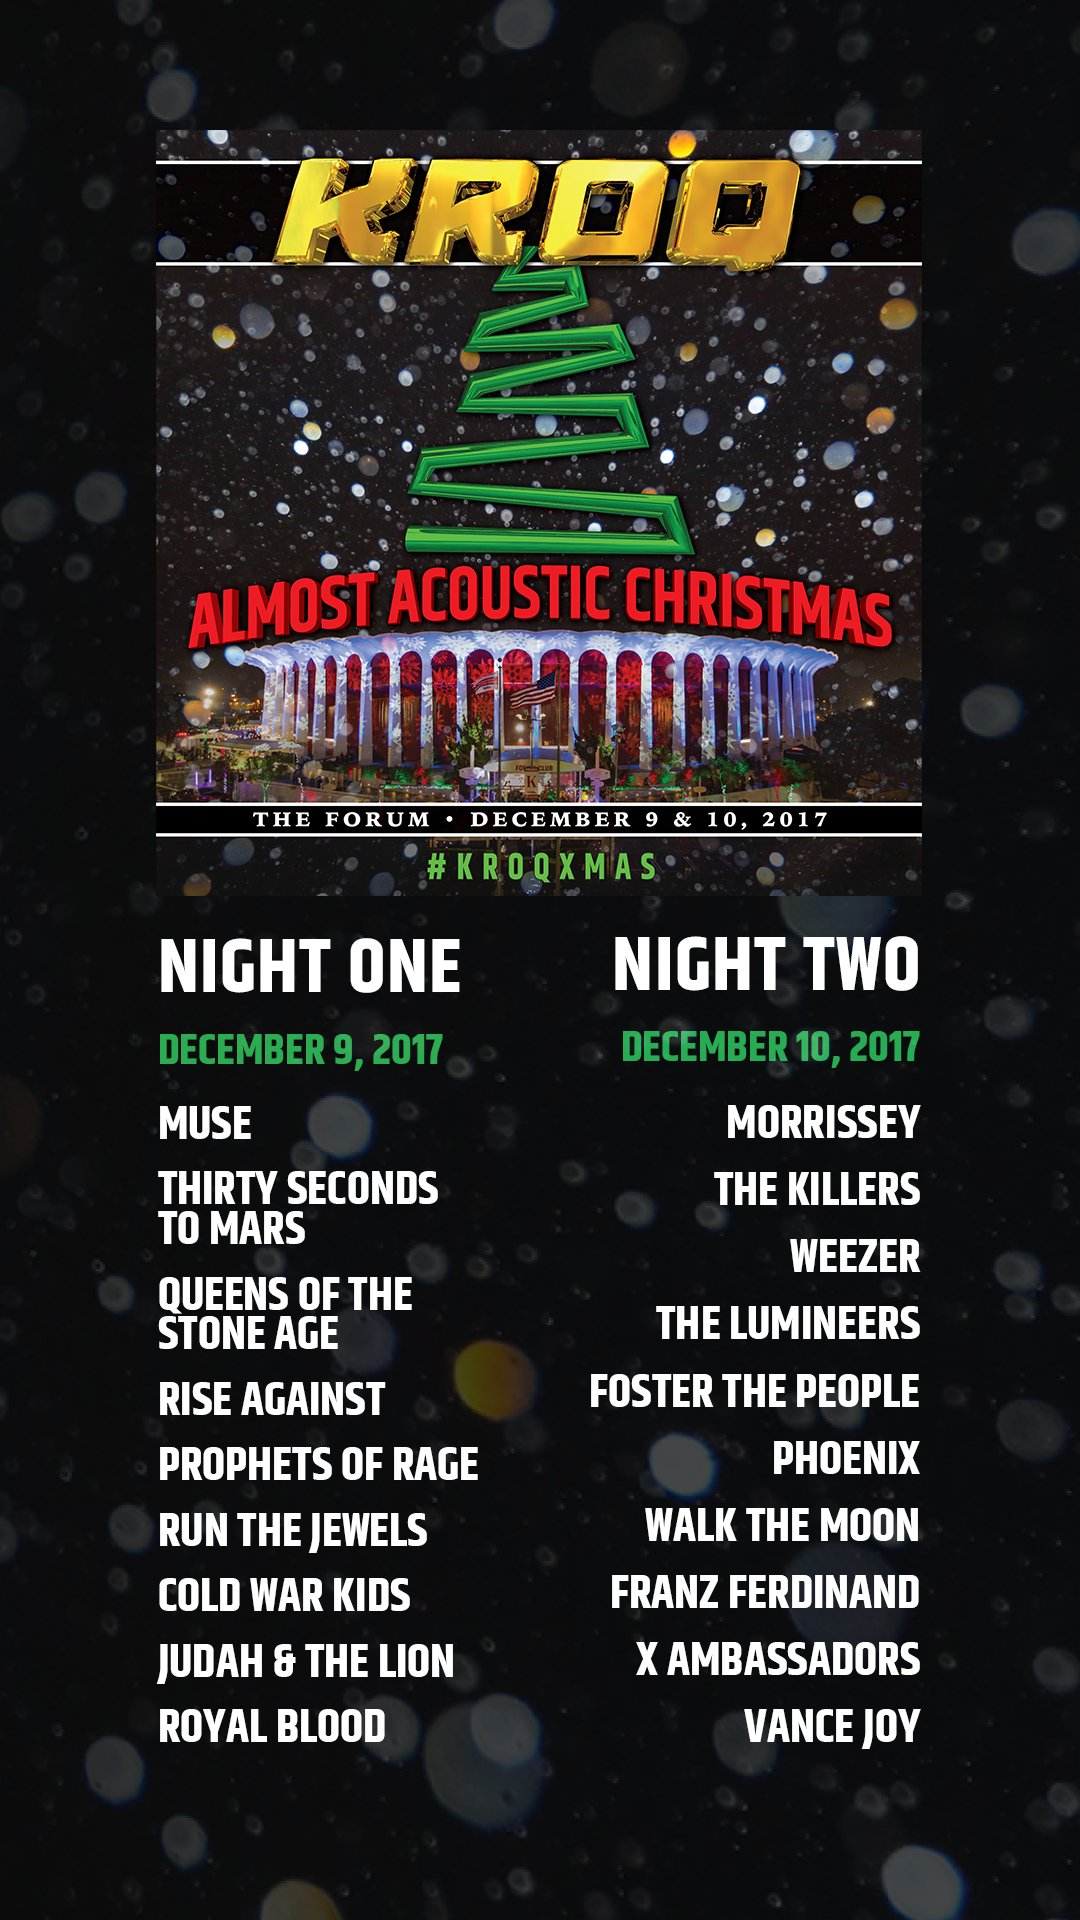 muse on twitter muse are headlining kroqs almost acoustic christmas in los angeles on december 9th details at httpstco4zo3hnxu0d kroqxmas - Kroq Christmas